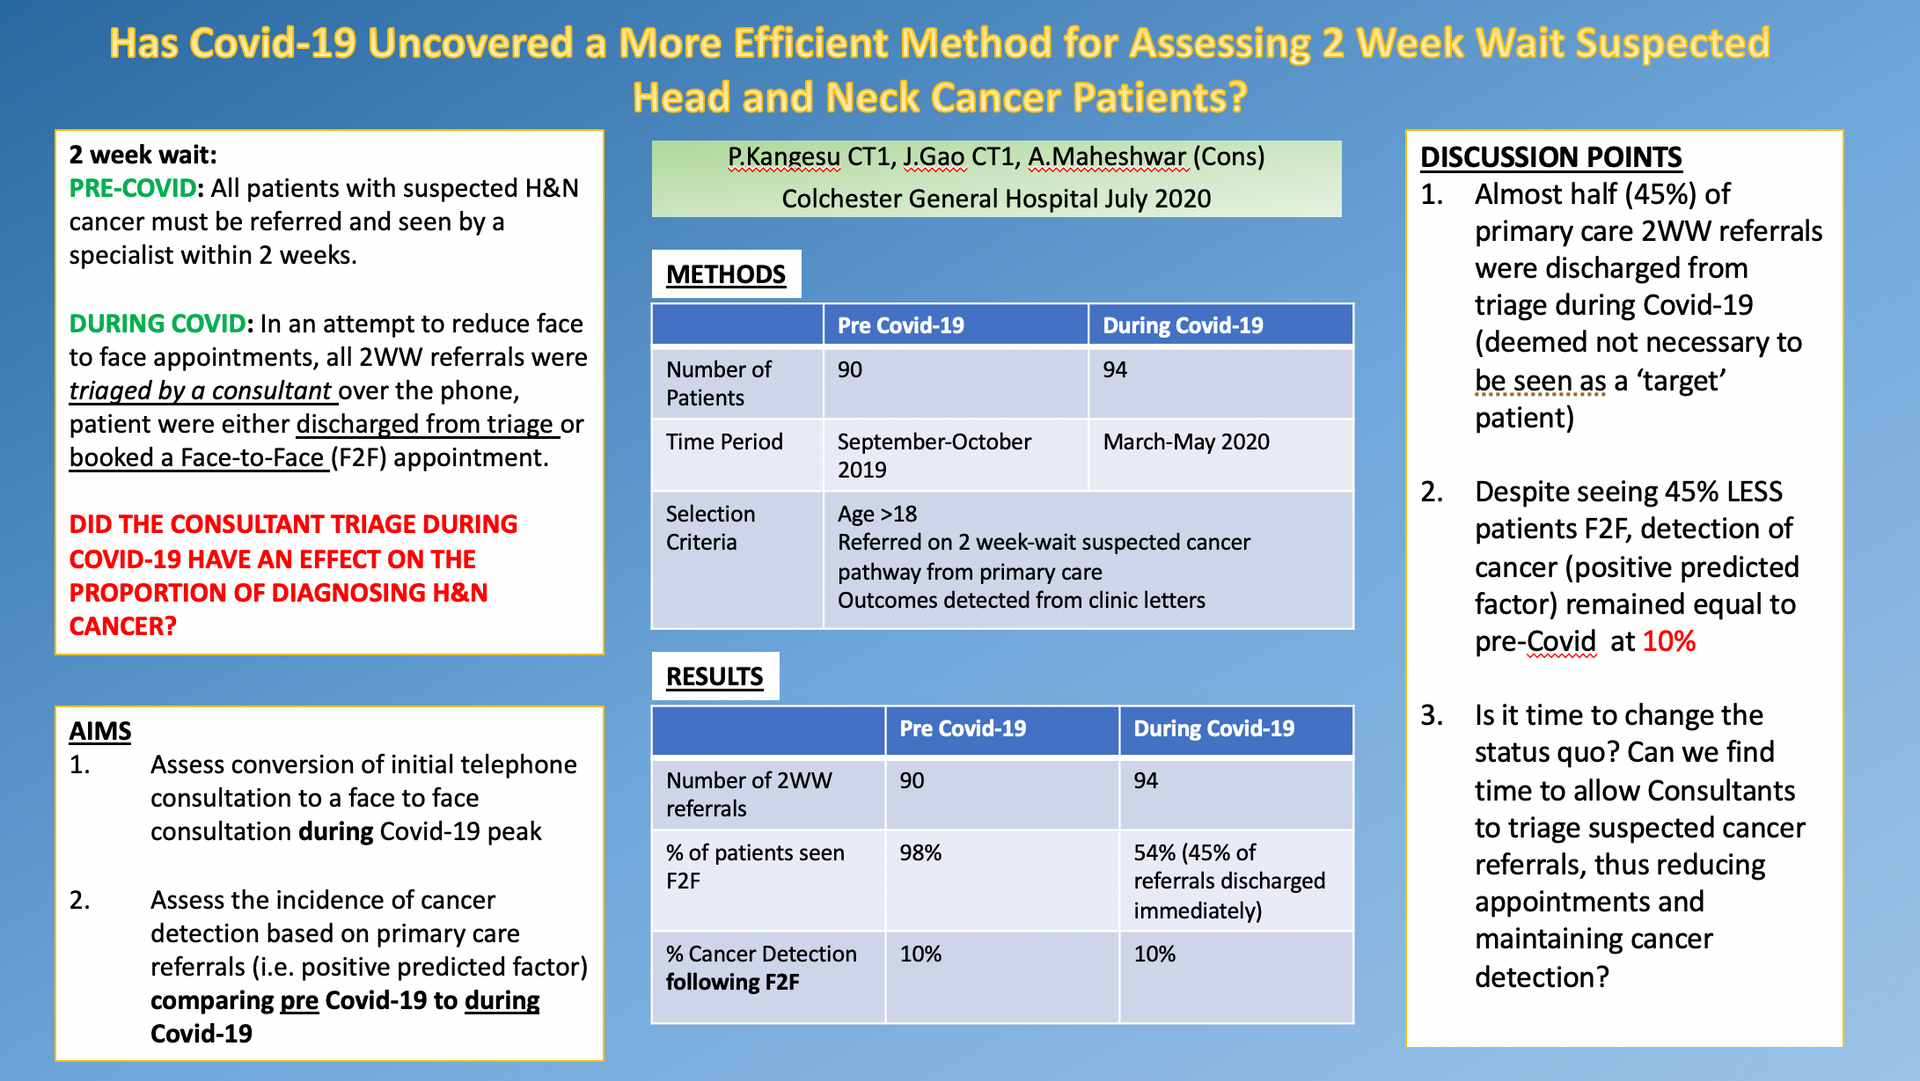 Has Covid-19 Uncovered a More Efficient Method for Assessing 2 Week Wait Suspected Head and Neck Cancer Patients?: Prashan Kangesu